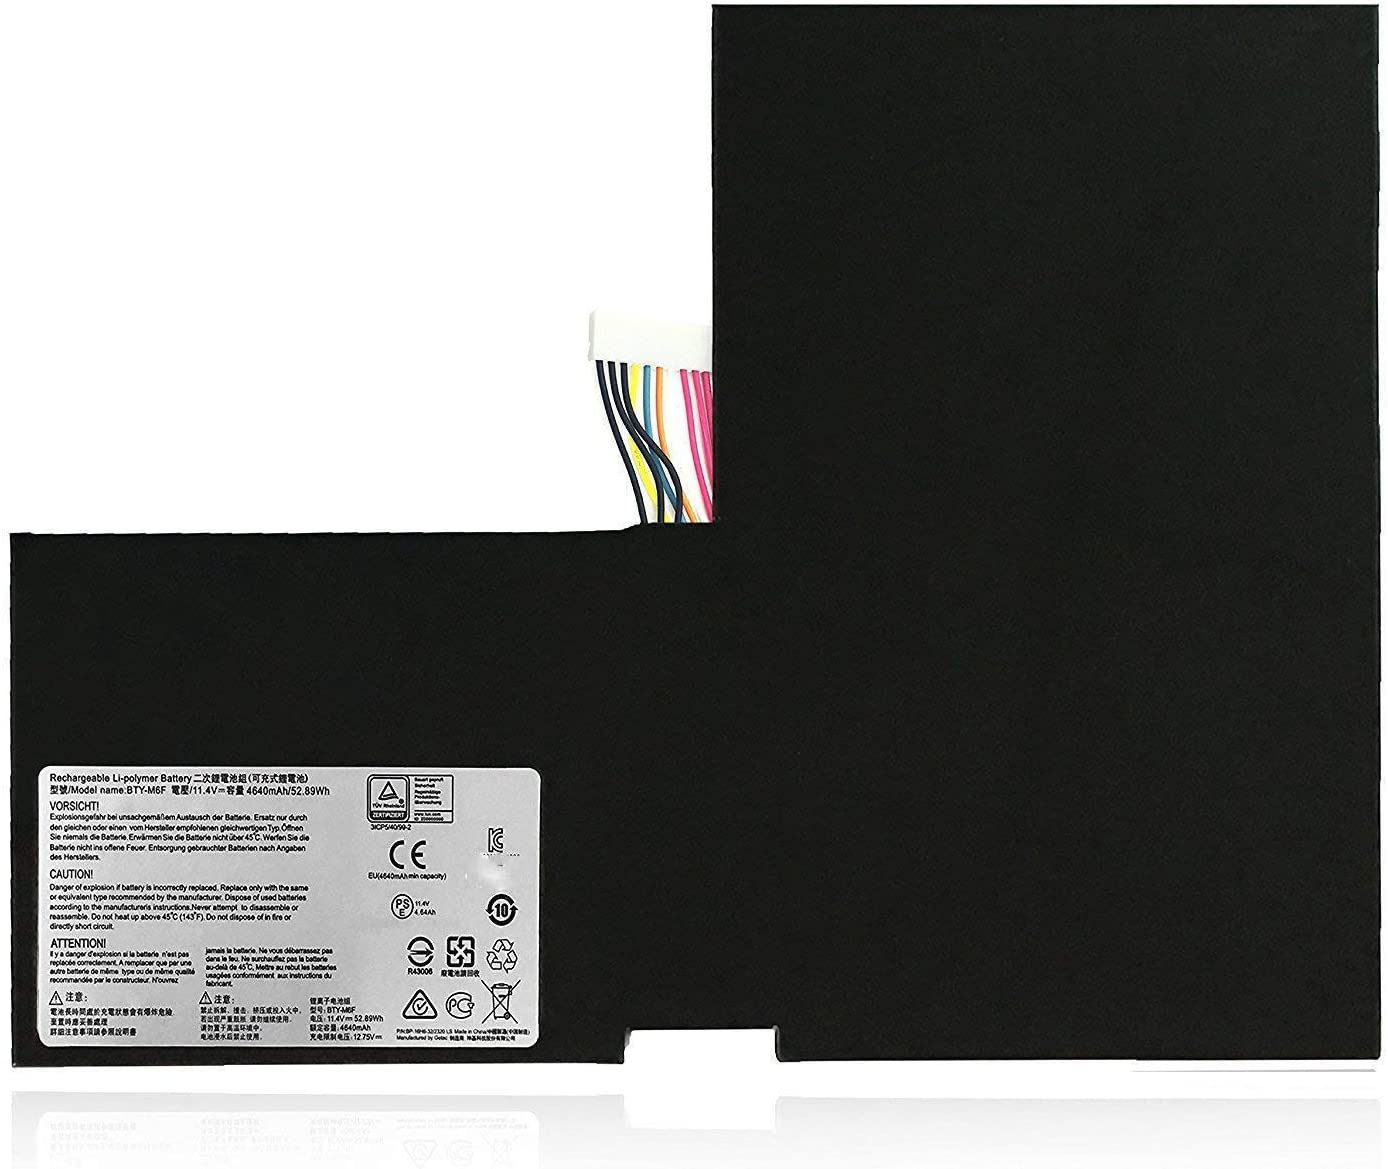 BTY-M6F MS-16H2 3ICP5/40/99-2 Replacement Laptop Battery for MSI GS60 2PL 2PC 2PE 2QC 2QD 6QE 6QC PX60 16H2 2QE 2pc-003 6QC-257XCN 2QE-215CN2QE-215CN 6QC-070XCN(11.4V 52.89Wh 4640mAh)